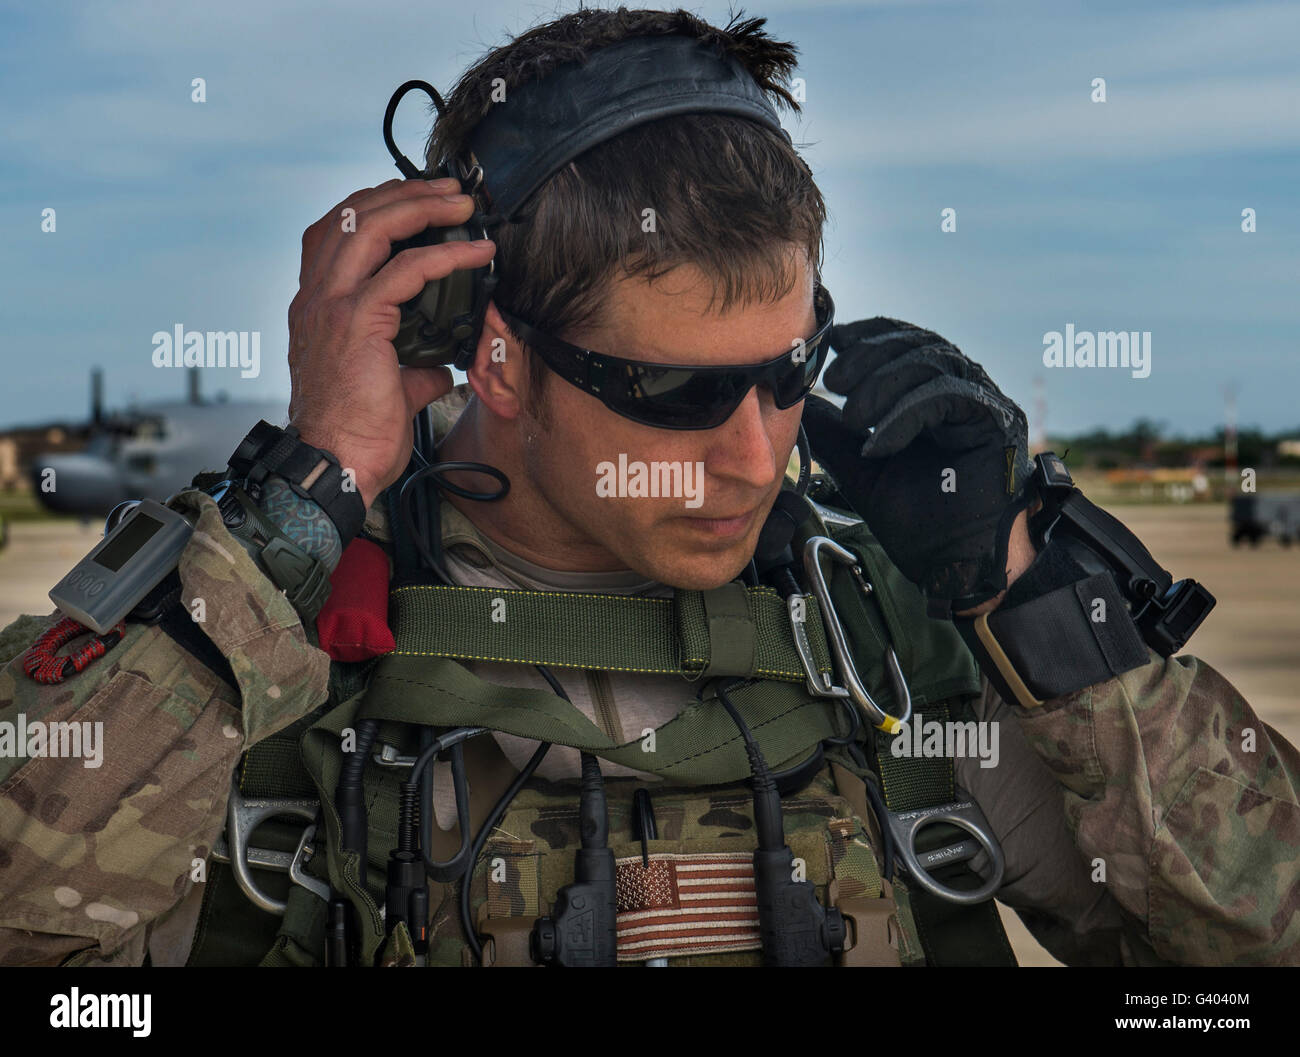 A U.S. Air Force combat controller gears up. - Stock Image